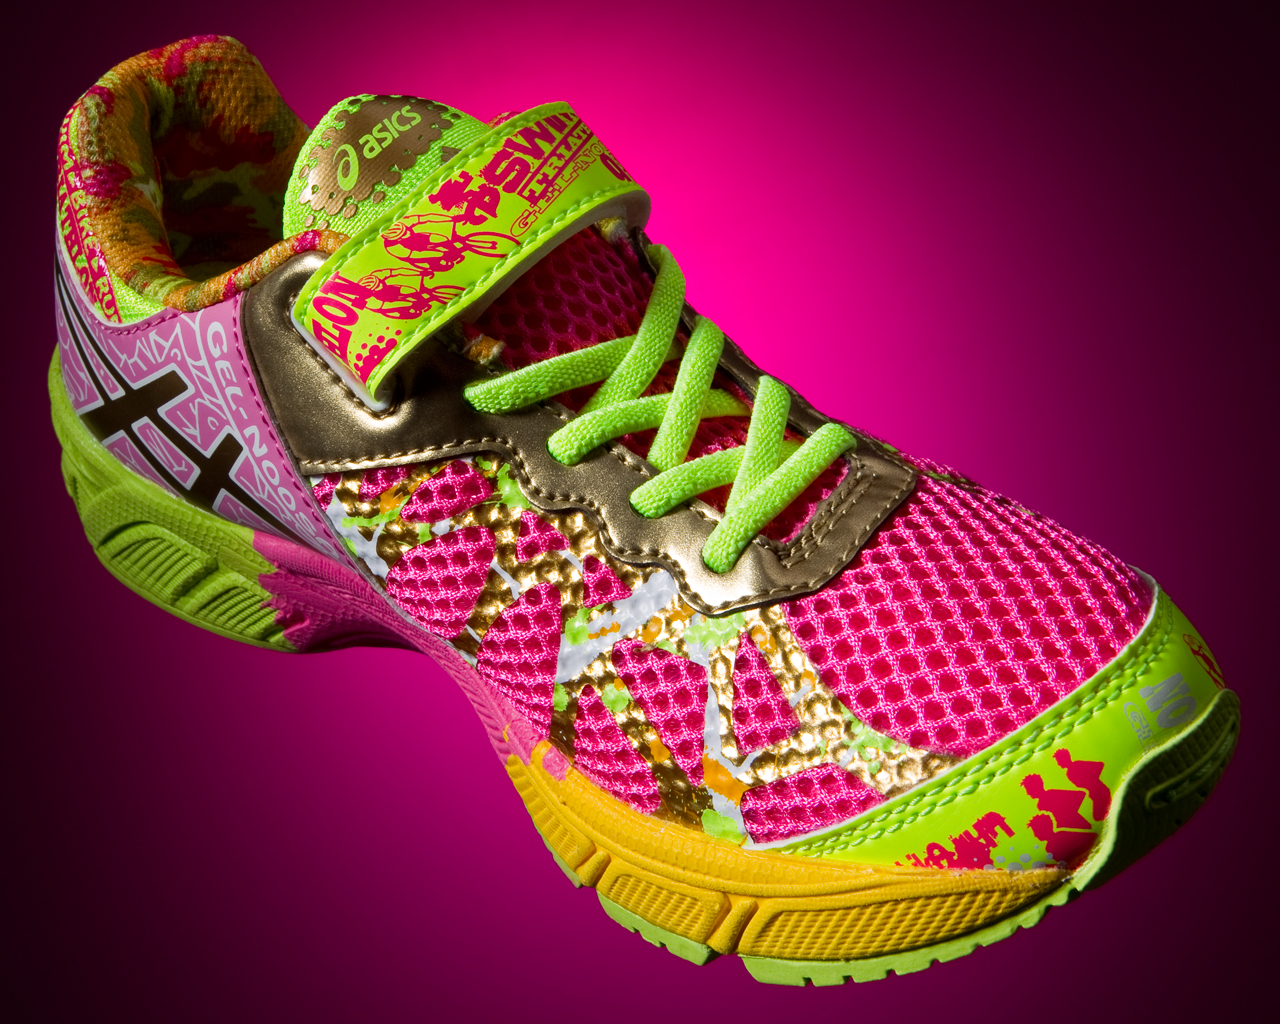 Asics Gel Noosa Pink Ribbon shoe